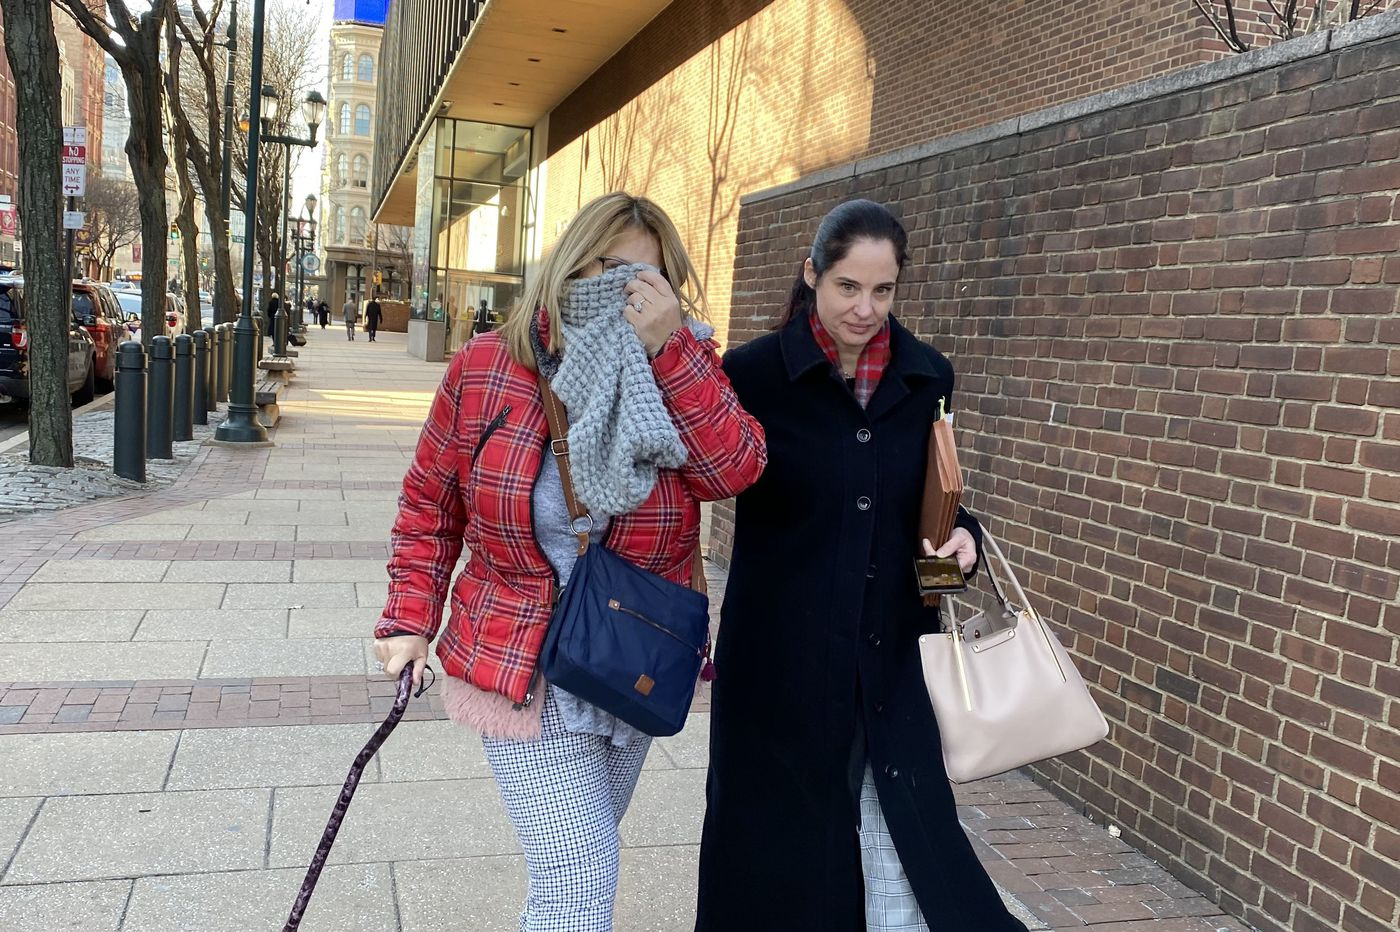 Woman who posed as Northeast Philadelphia 'lawyer' pleads guilty to defrauding immigrants